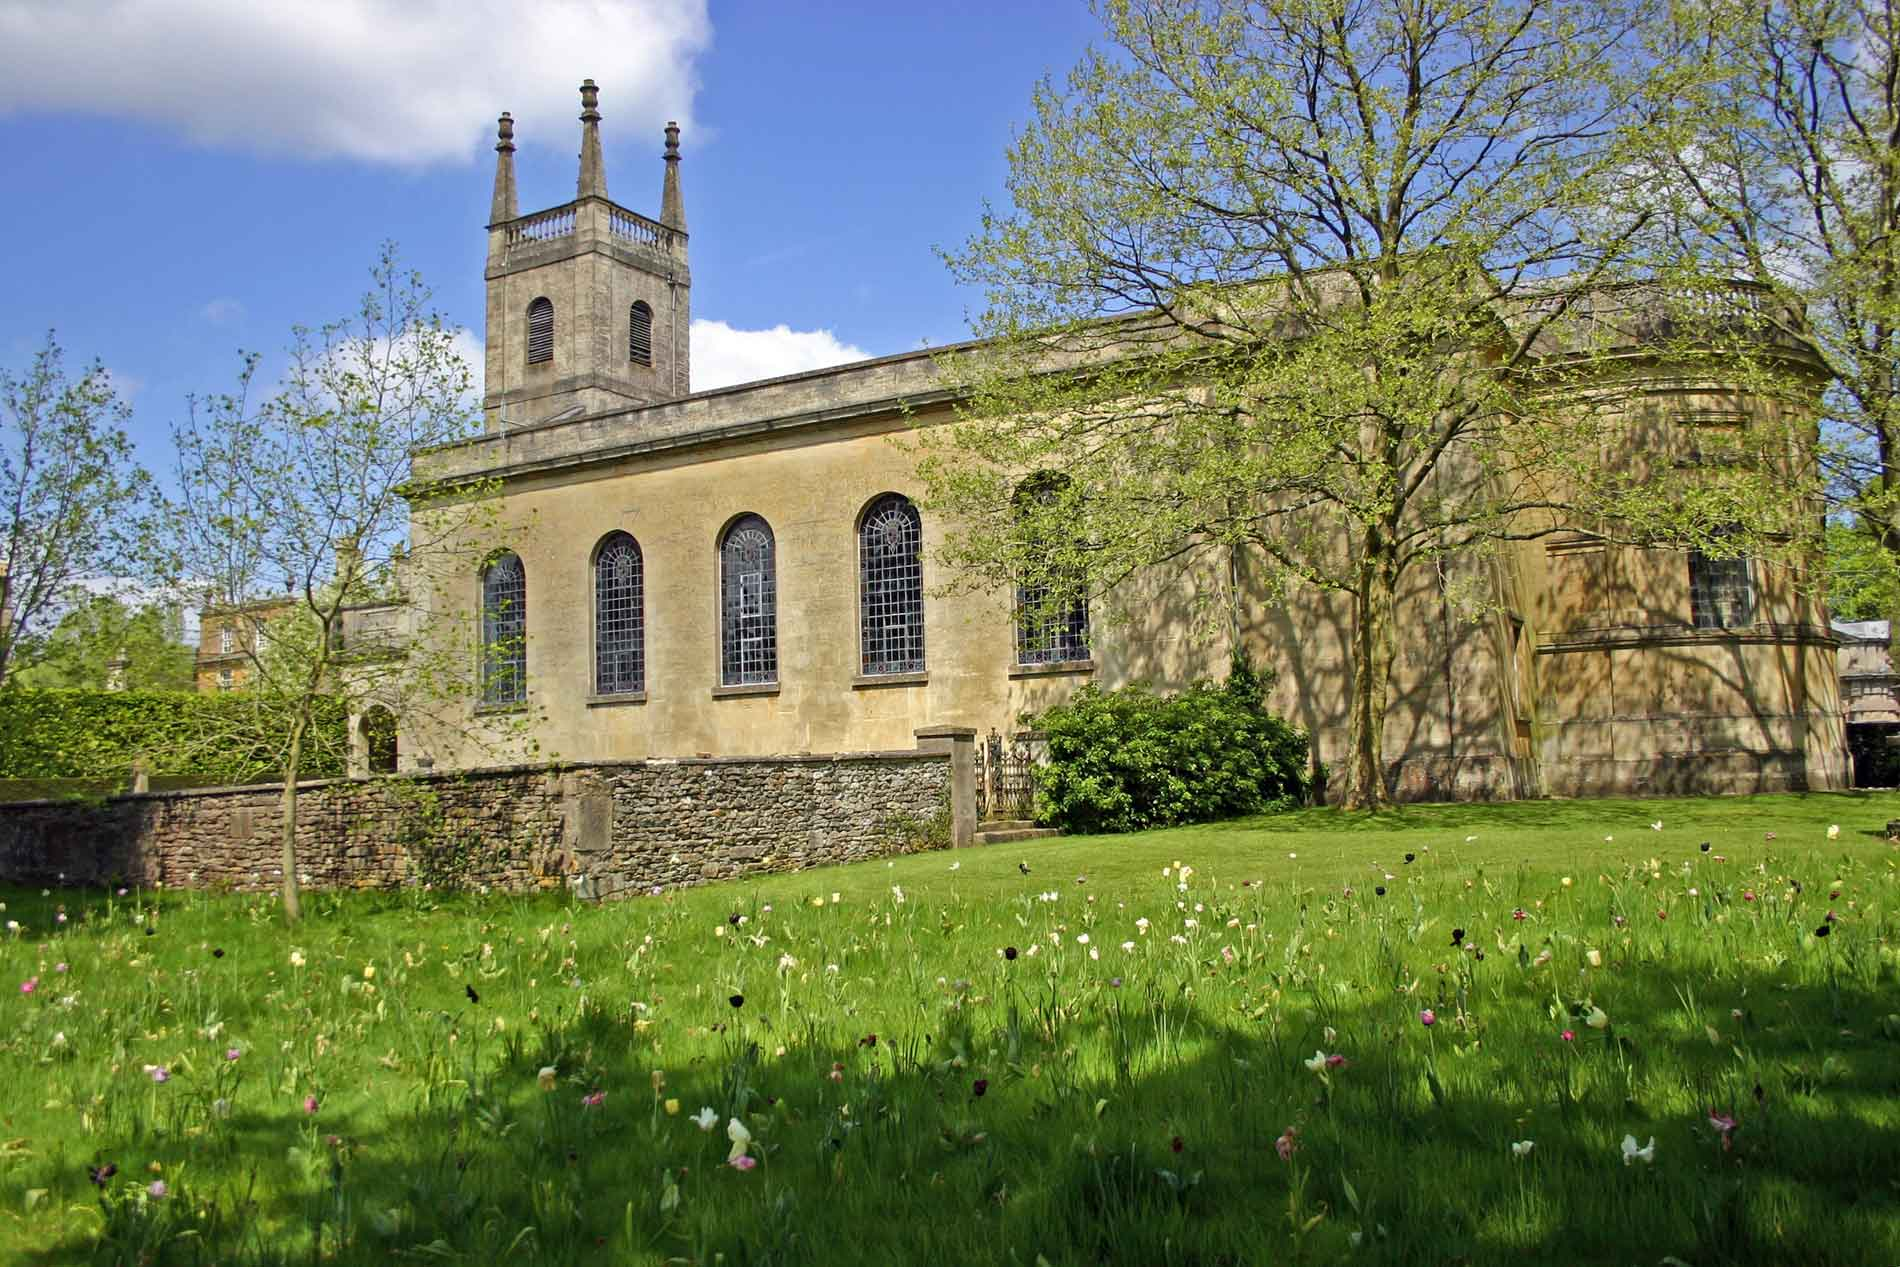 The South Facade of St. Michael and All Angels, Great Badminton